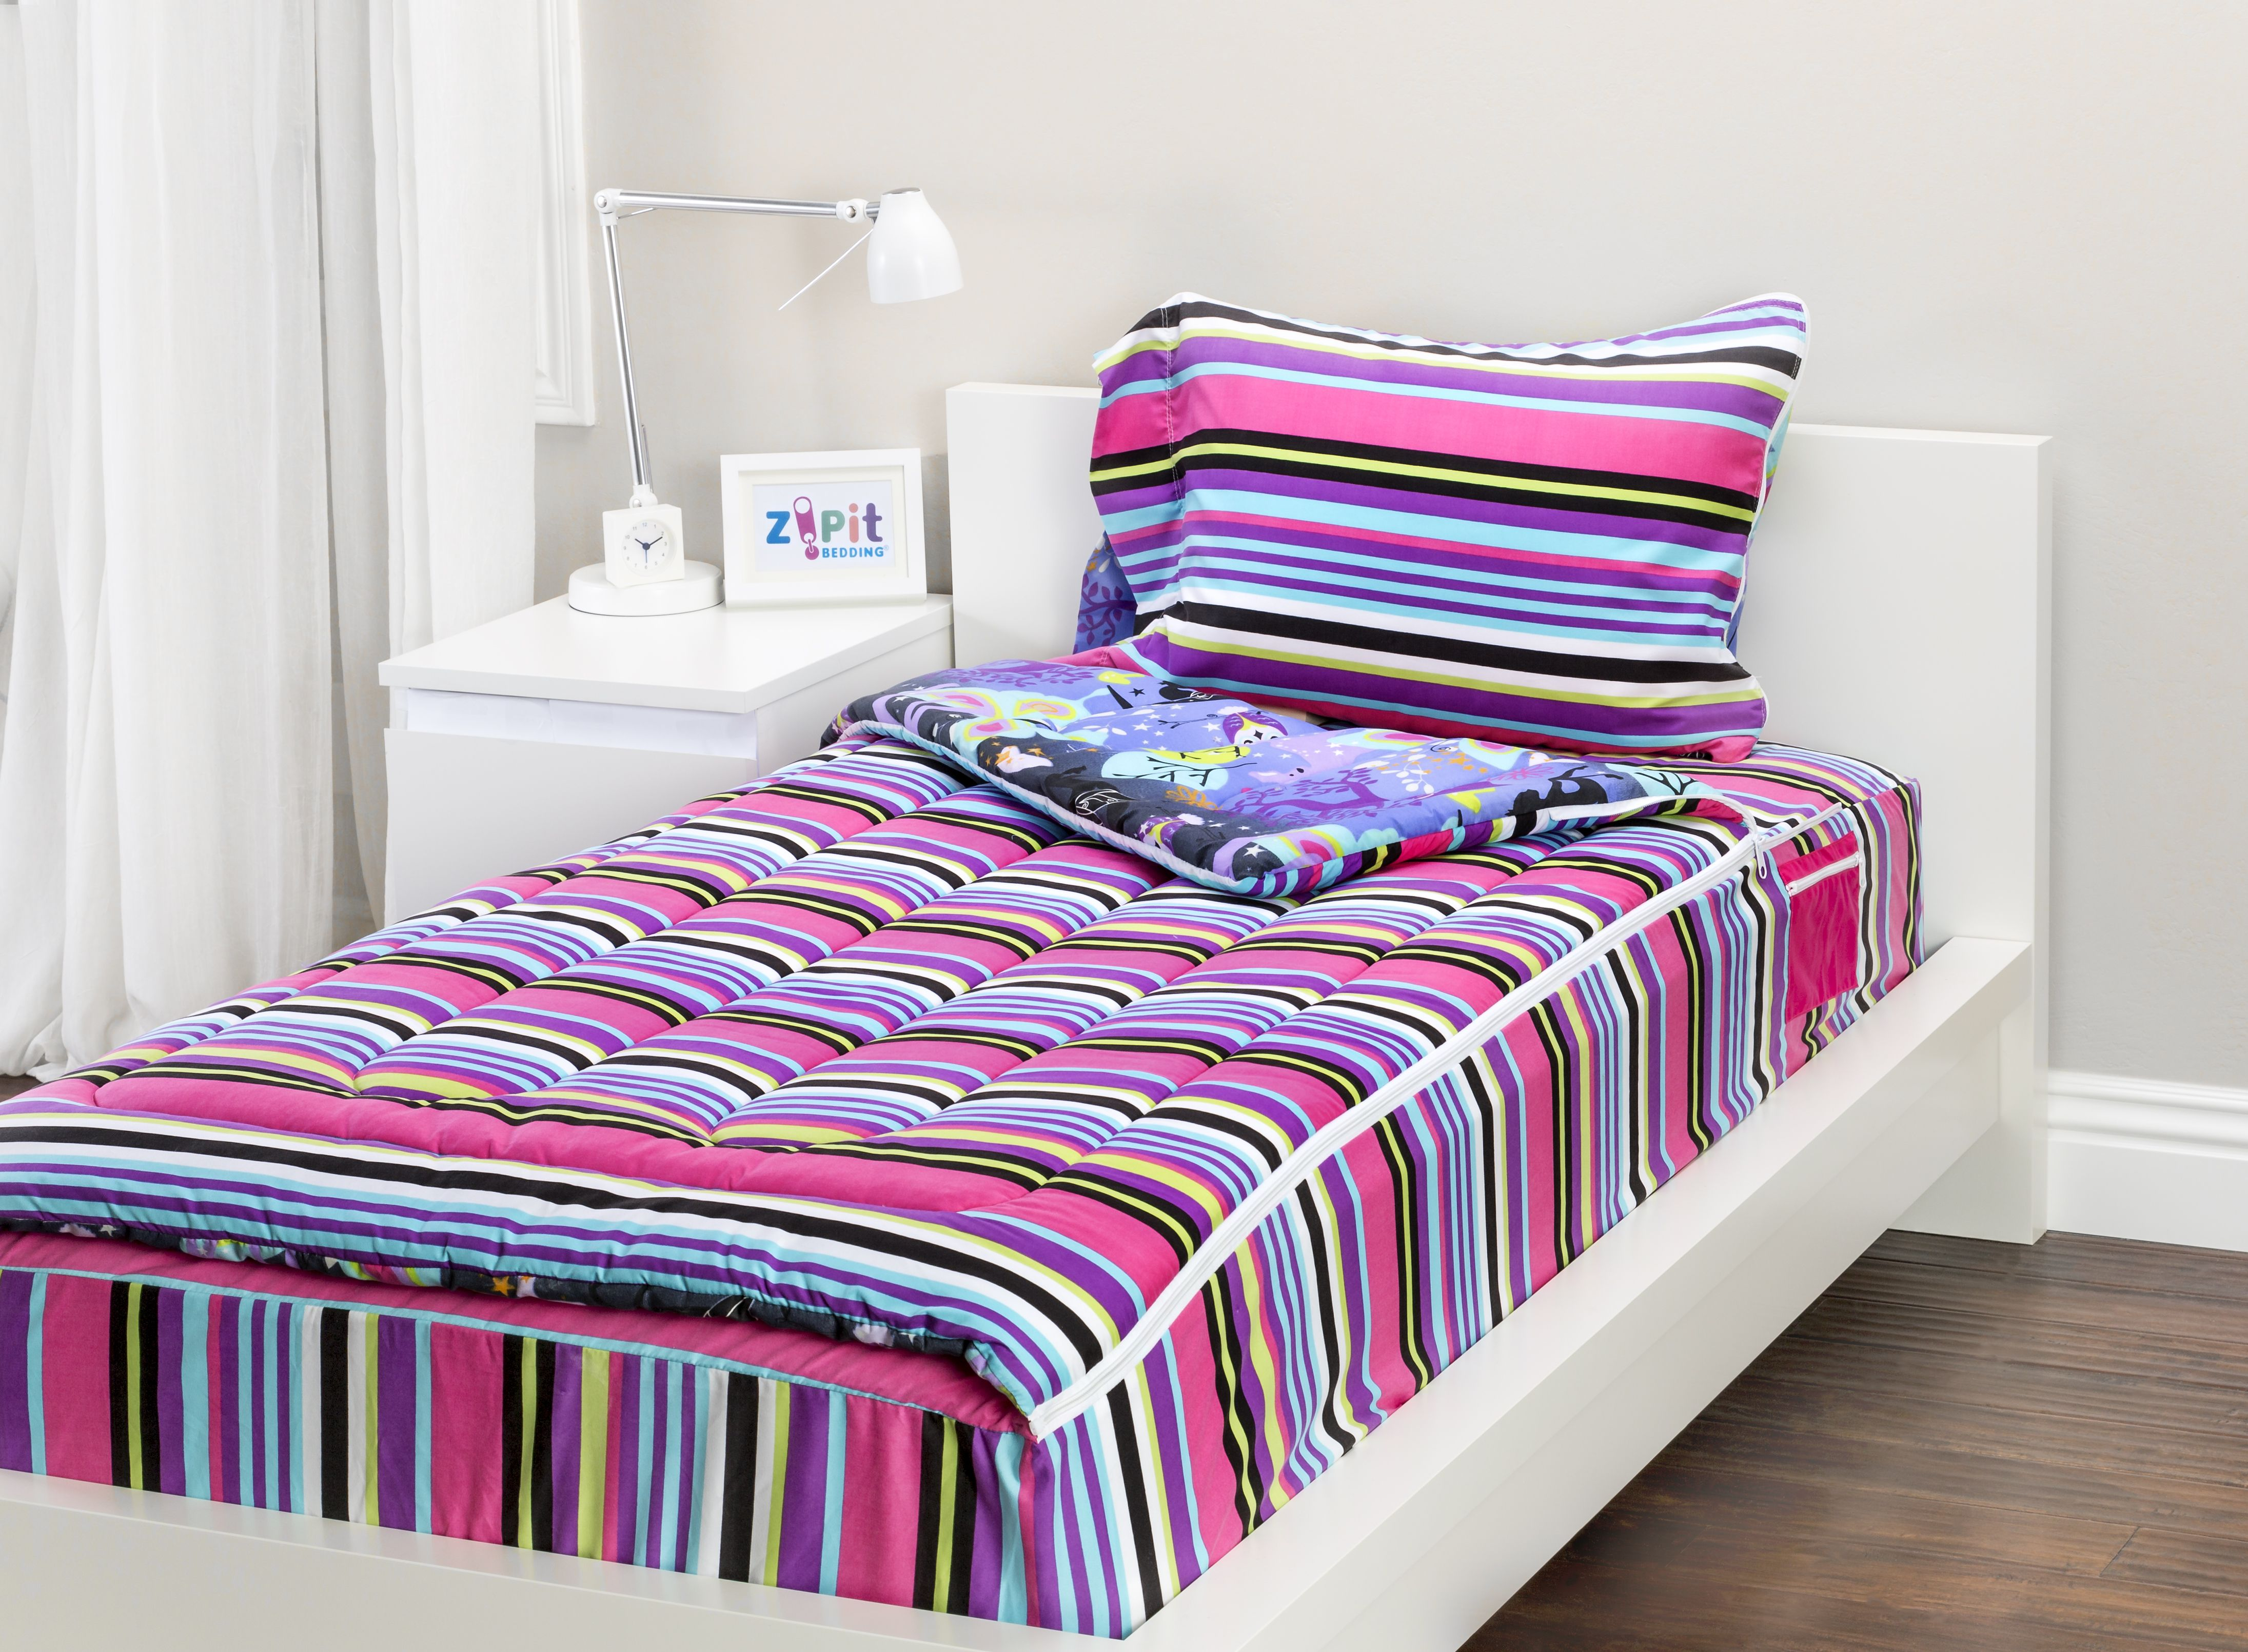 the fantasy forest zipit bedding set is reversible. zipit bedding